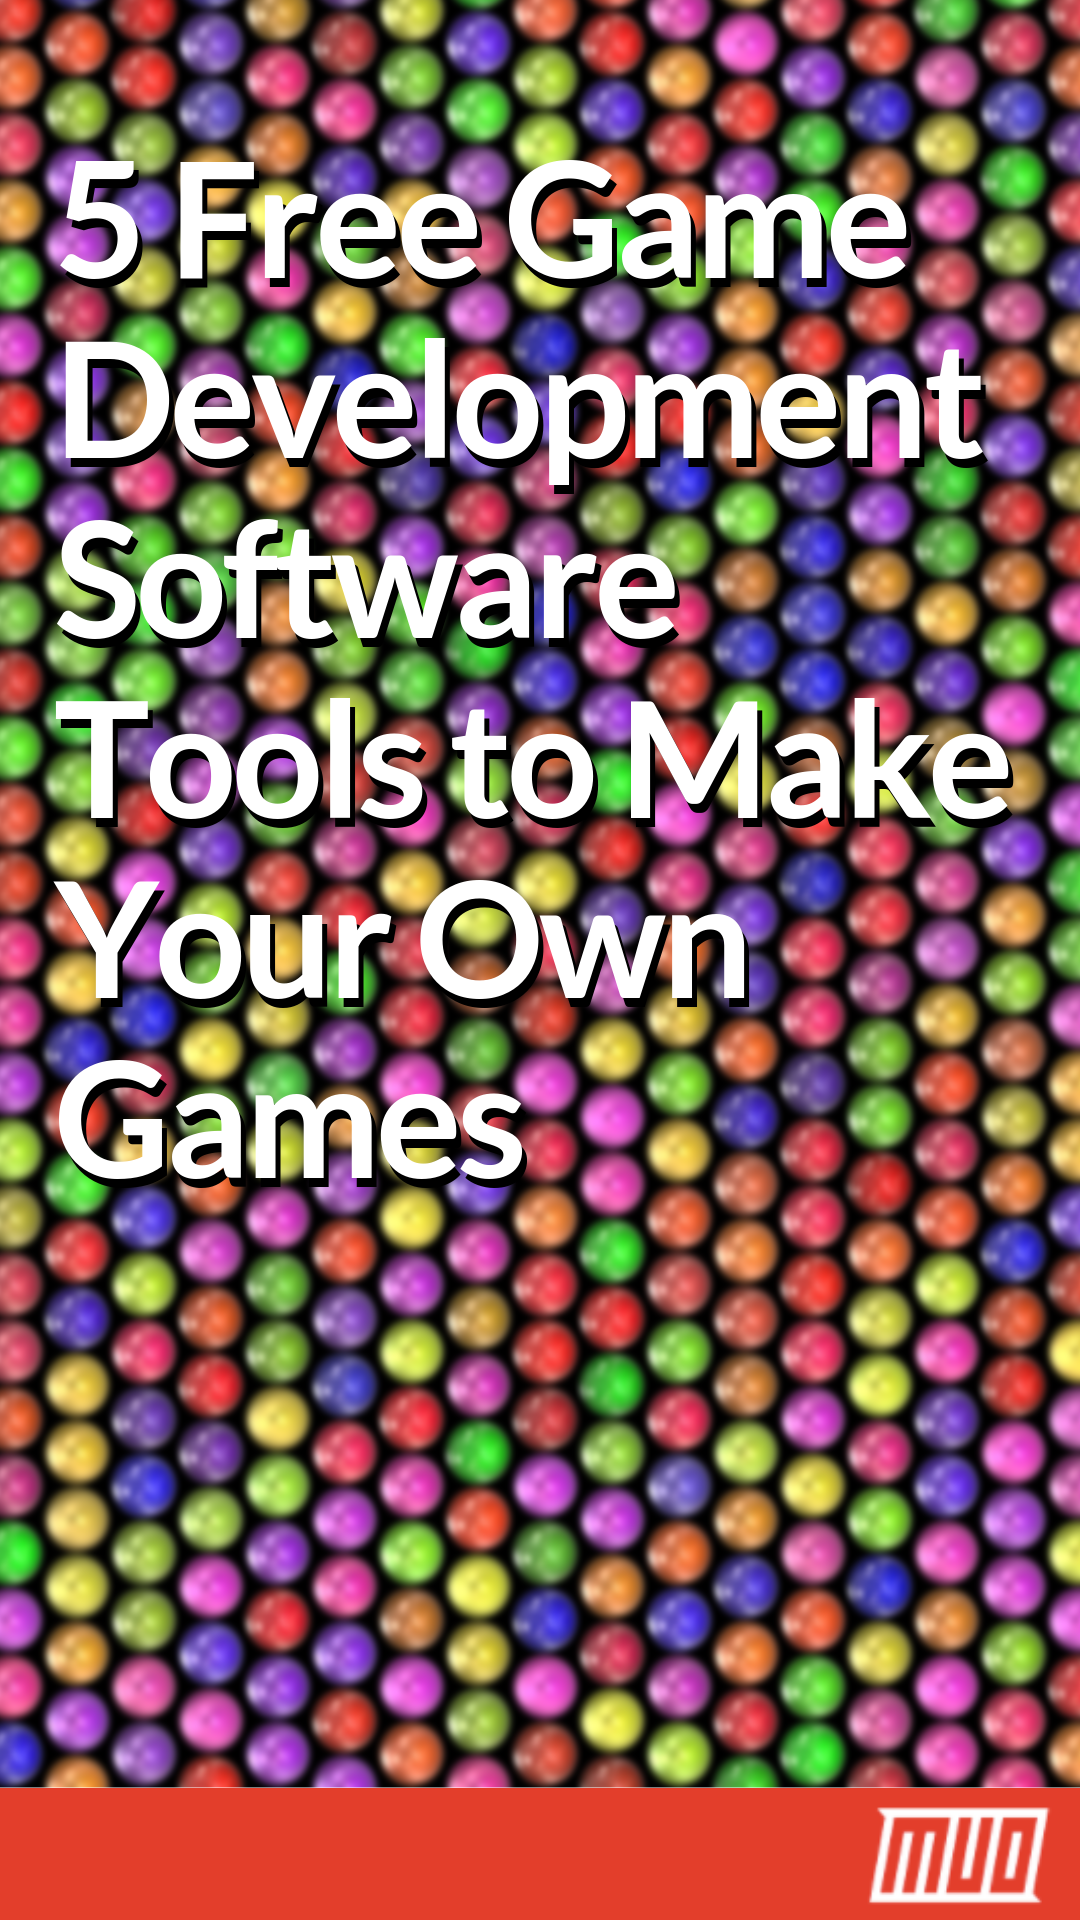 5 Free Game Development Software Tools to Make Your Own